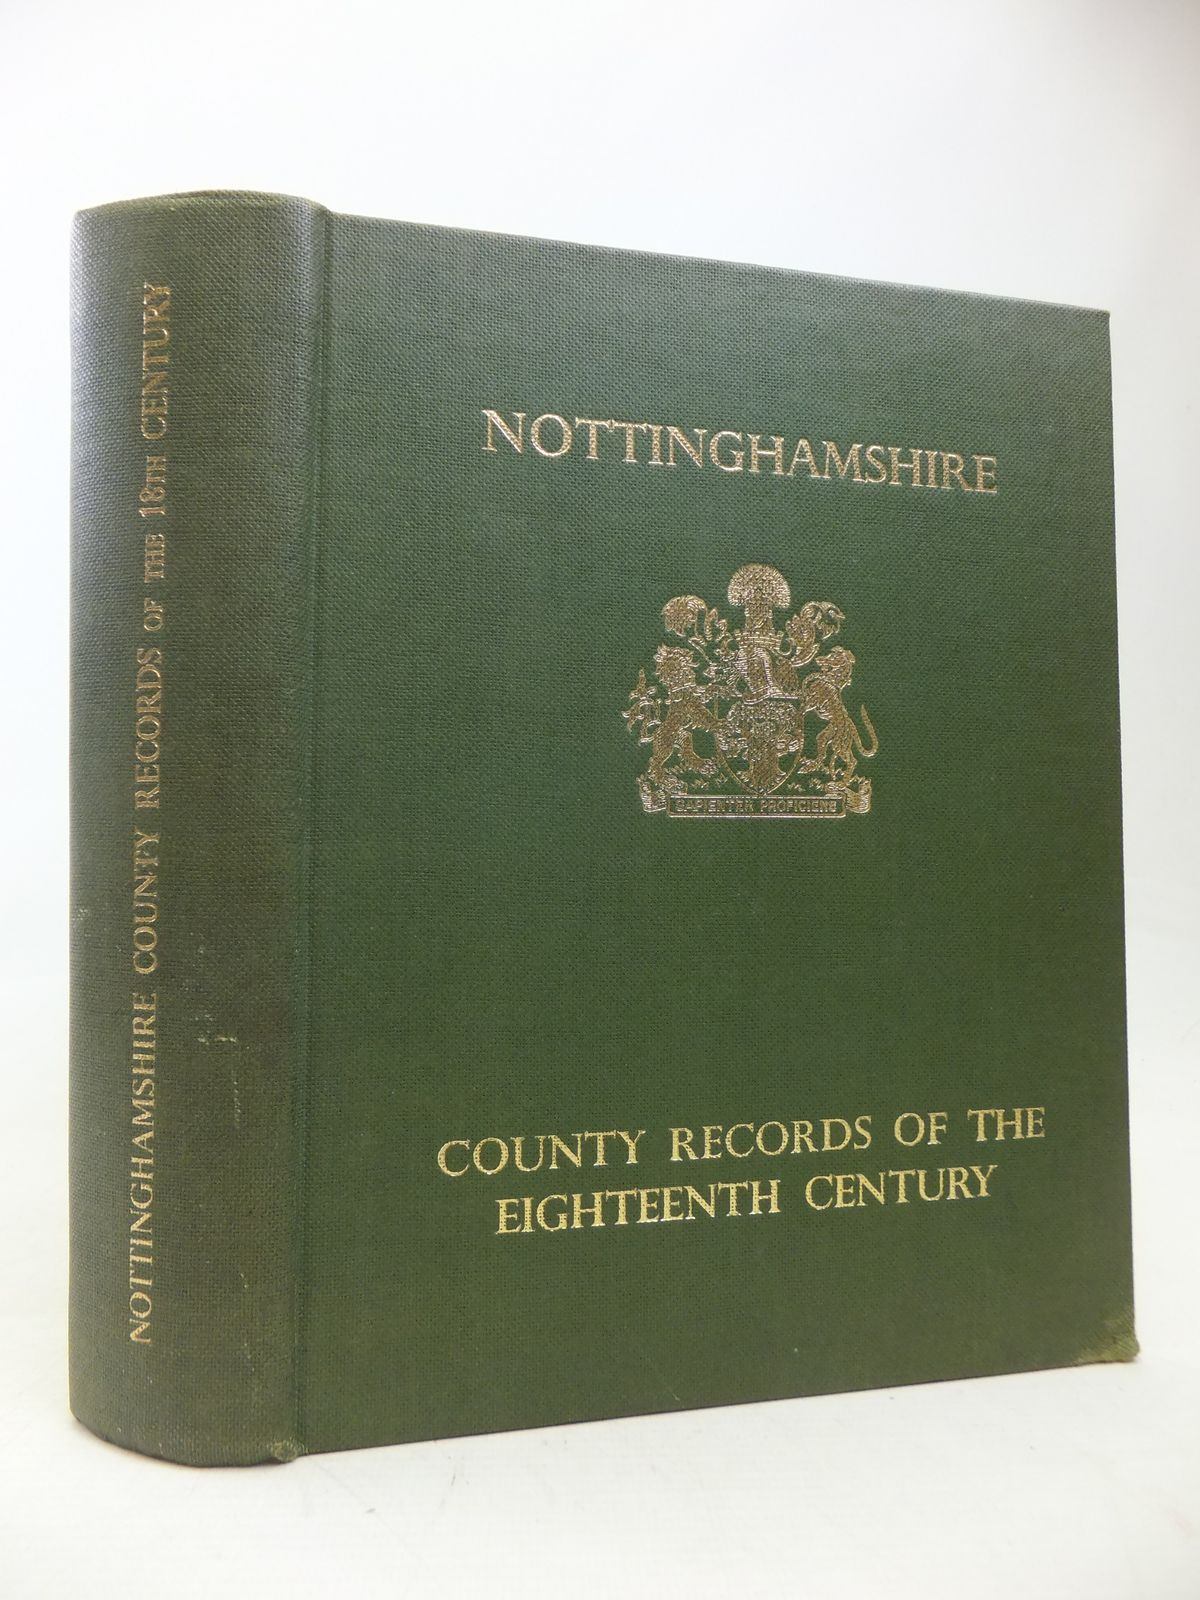 Photo of NOTTINGHAMSHIRE EXTRACTS FROM THE COUNTY RECORDS OF THE EIGHTEENTH CENTURY written by Meaby, K. Tweedale published by Thos. Forman & Sons Ltd. (STOCK CODE: 1810084)  for sale by Stella & Rose's Books